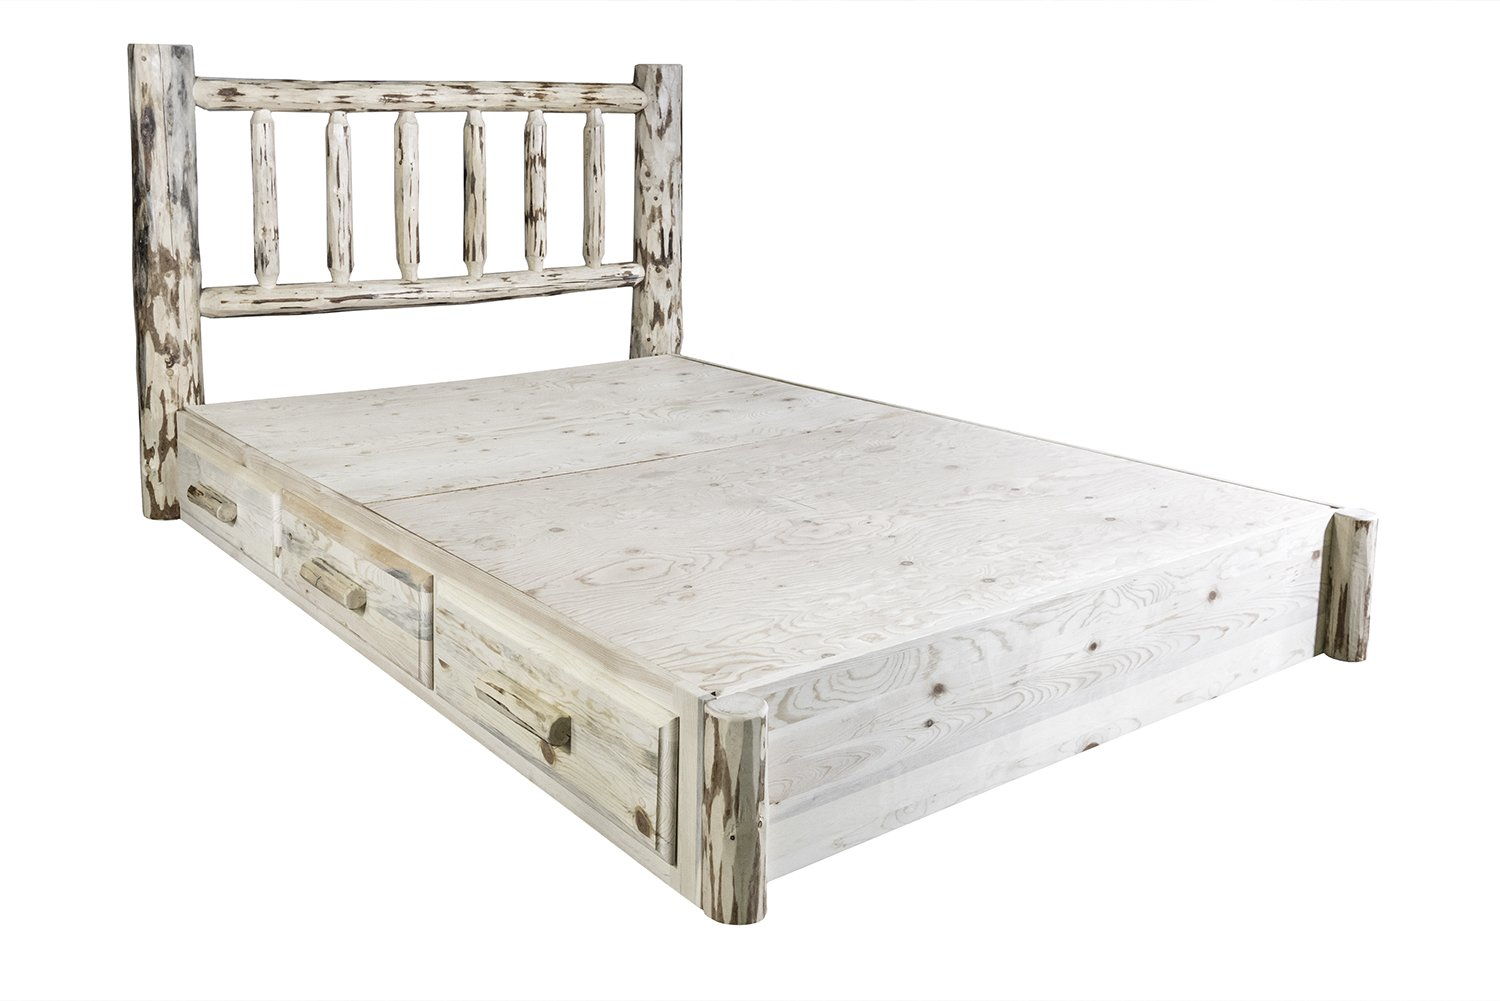 Montana Woodworks Montana Collection Queen Platform Bed with Storage, Ready to Finish